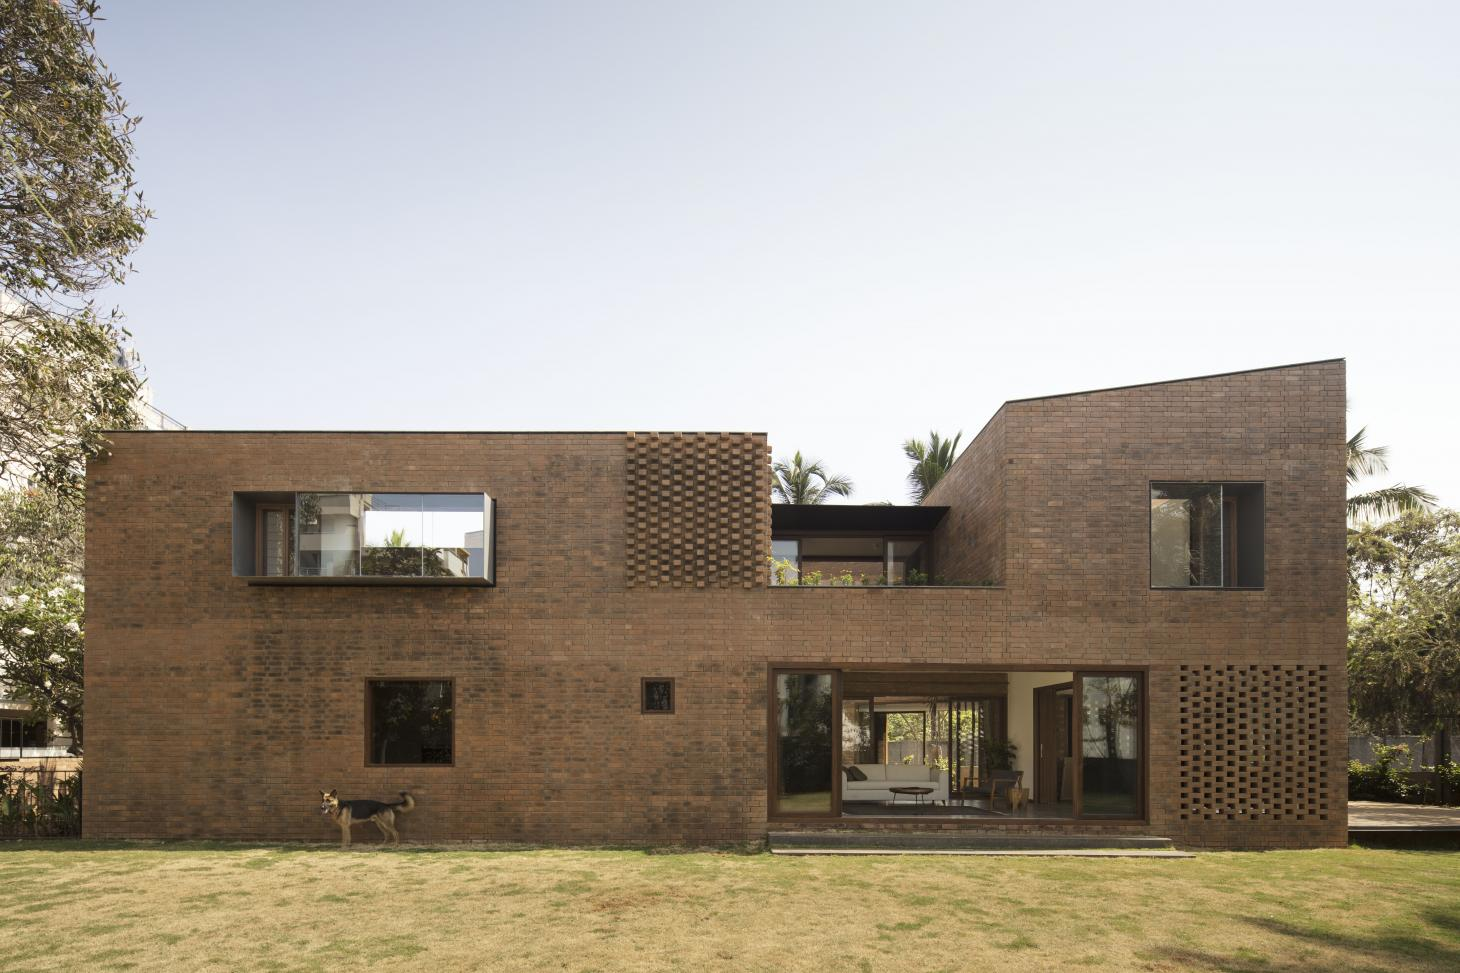 angles and geometric shapes in brick at Brick House by Collective Project